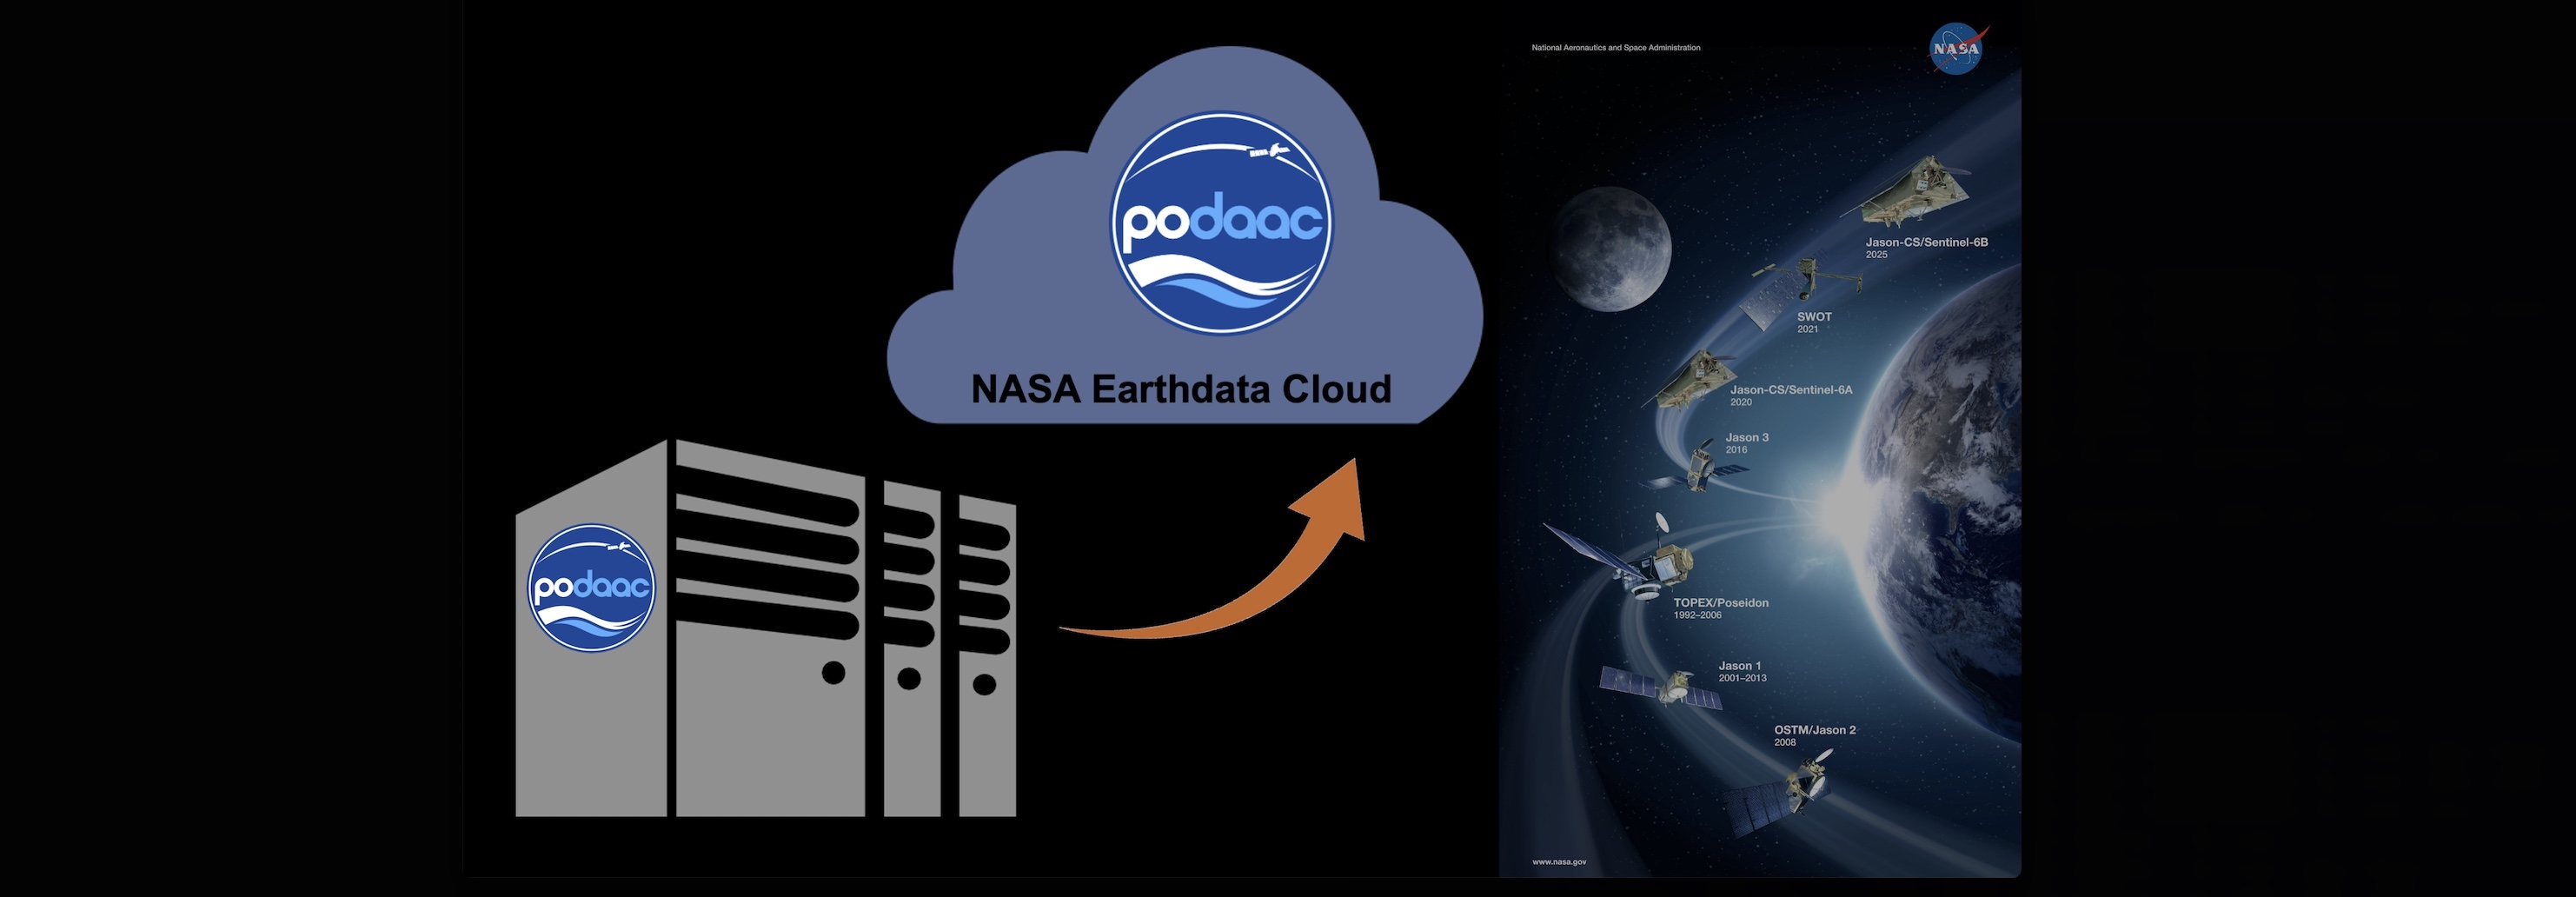 This graphic illustrates that the PO.DAAC data archive is being migrated to the NASA Earthdata Cloud.